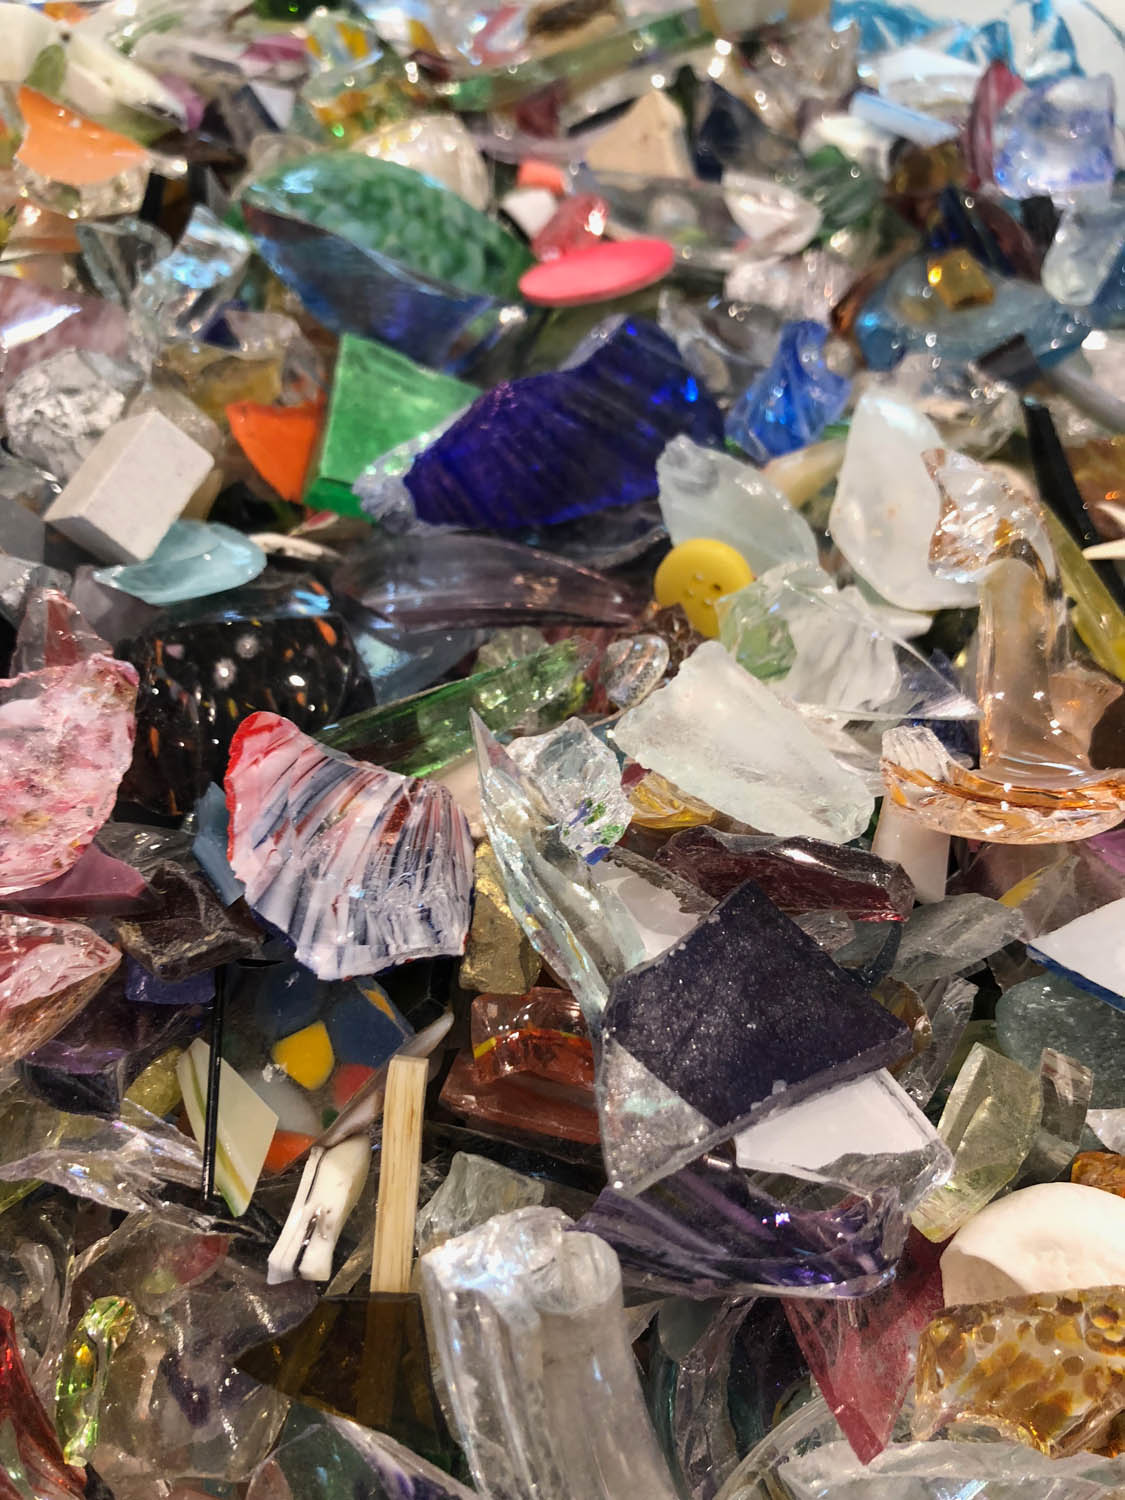 Colorful glass shards for making 3D artwork